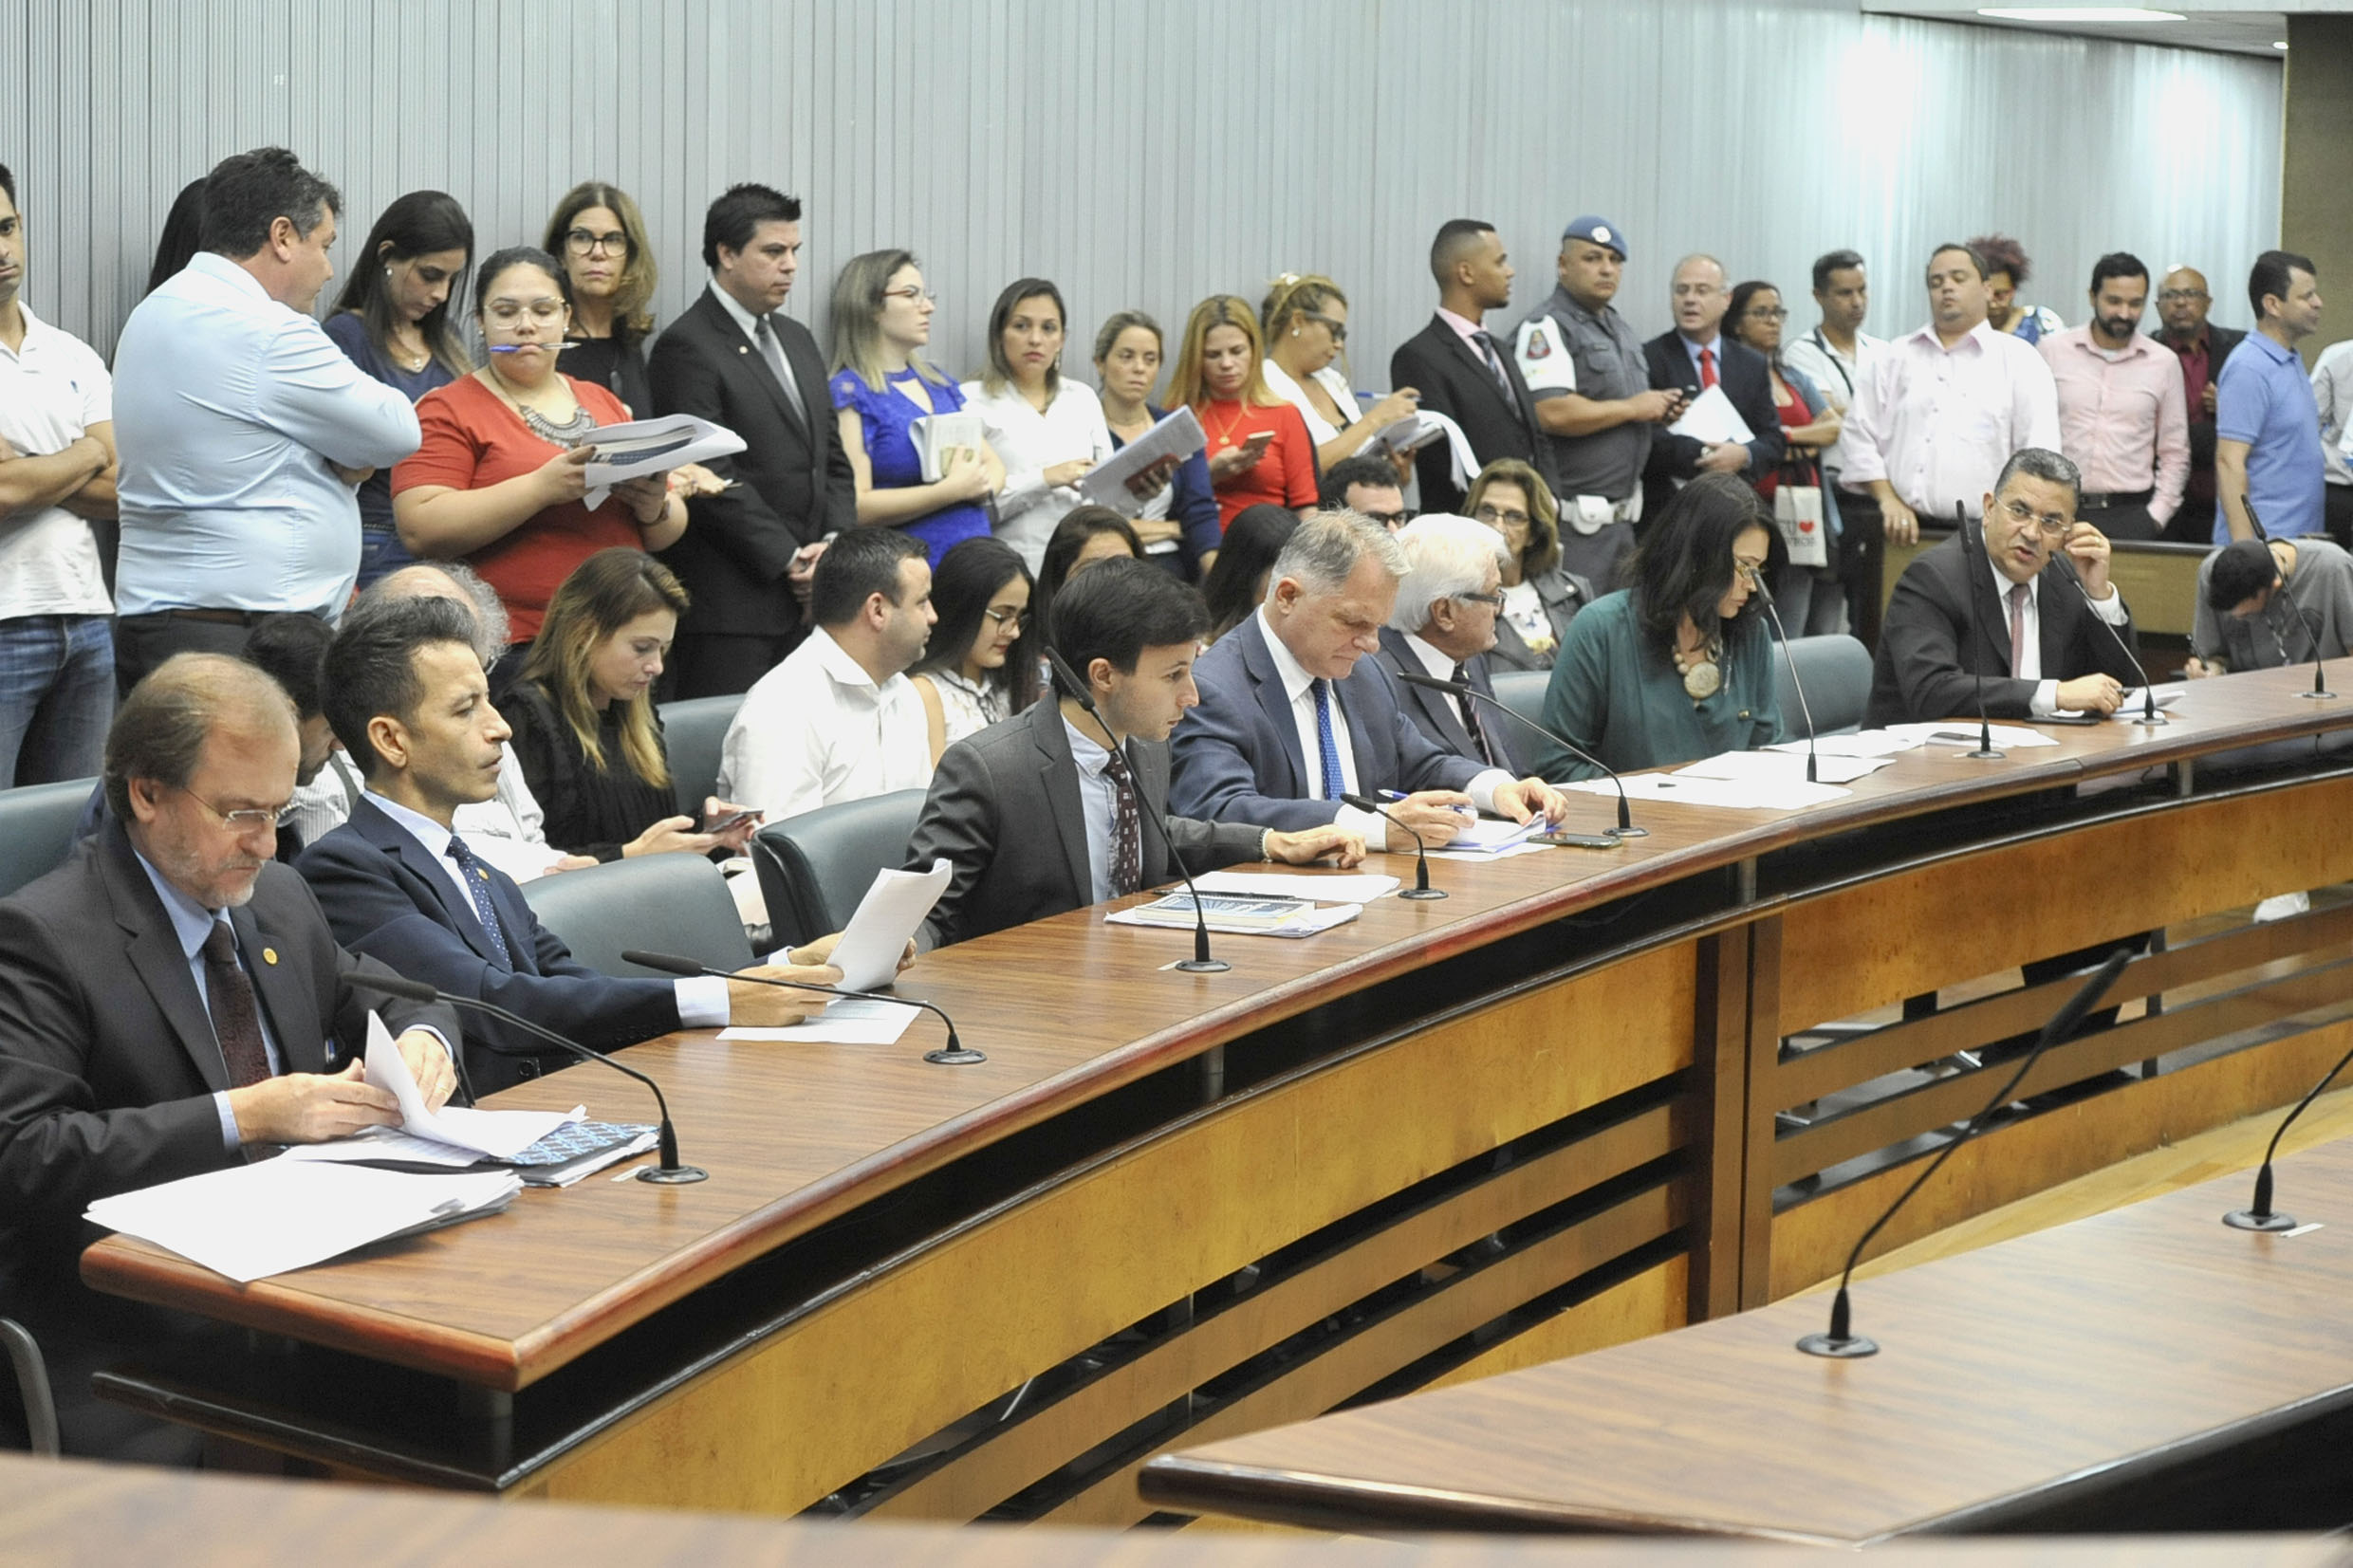 Parlamentares na comissão<a style='float:right' href='https://www3.al.sp.gov.br/repositorio/noticia/N-04-2019/fg233419.jpg' target=_blank><img src='/_img/material-file-download-white.png' width='14px' alt='Clique para baixar a imagem'></a>